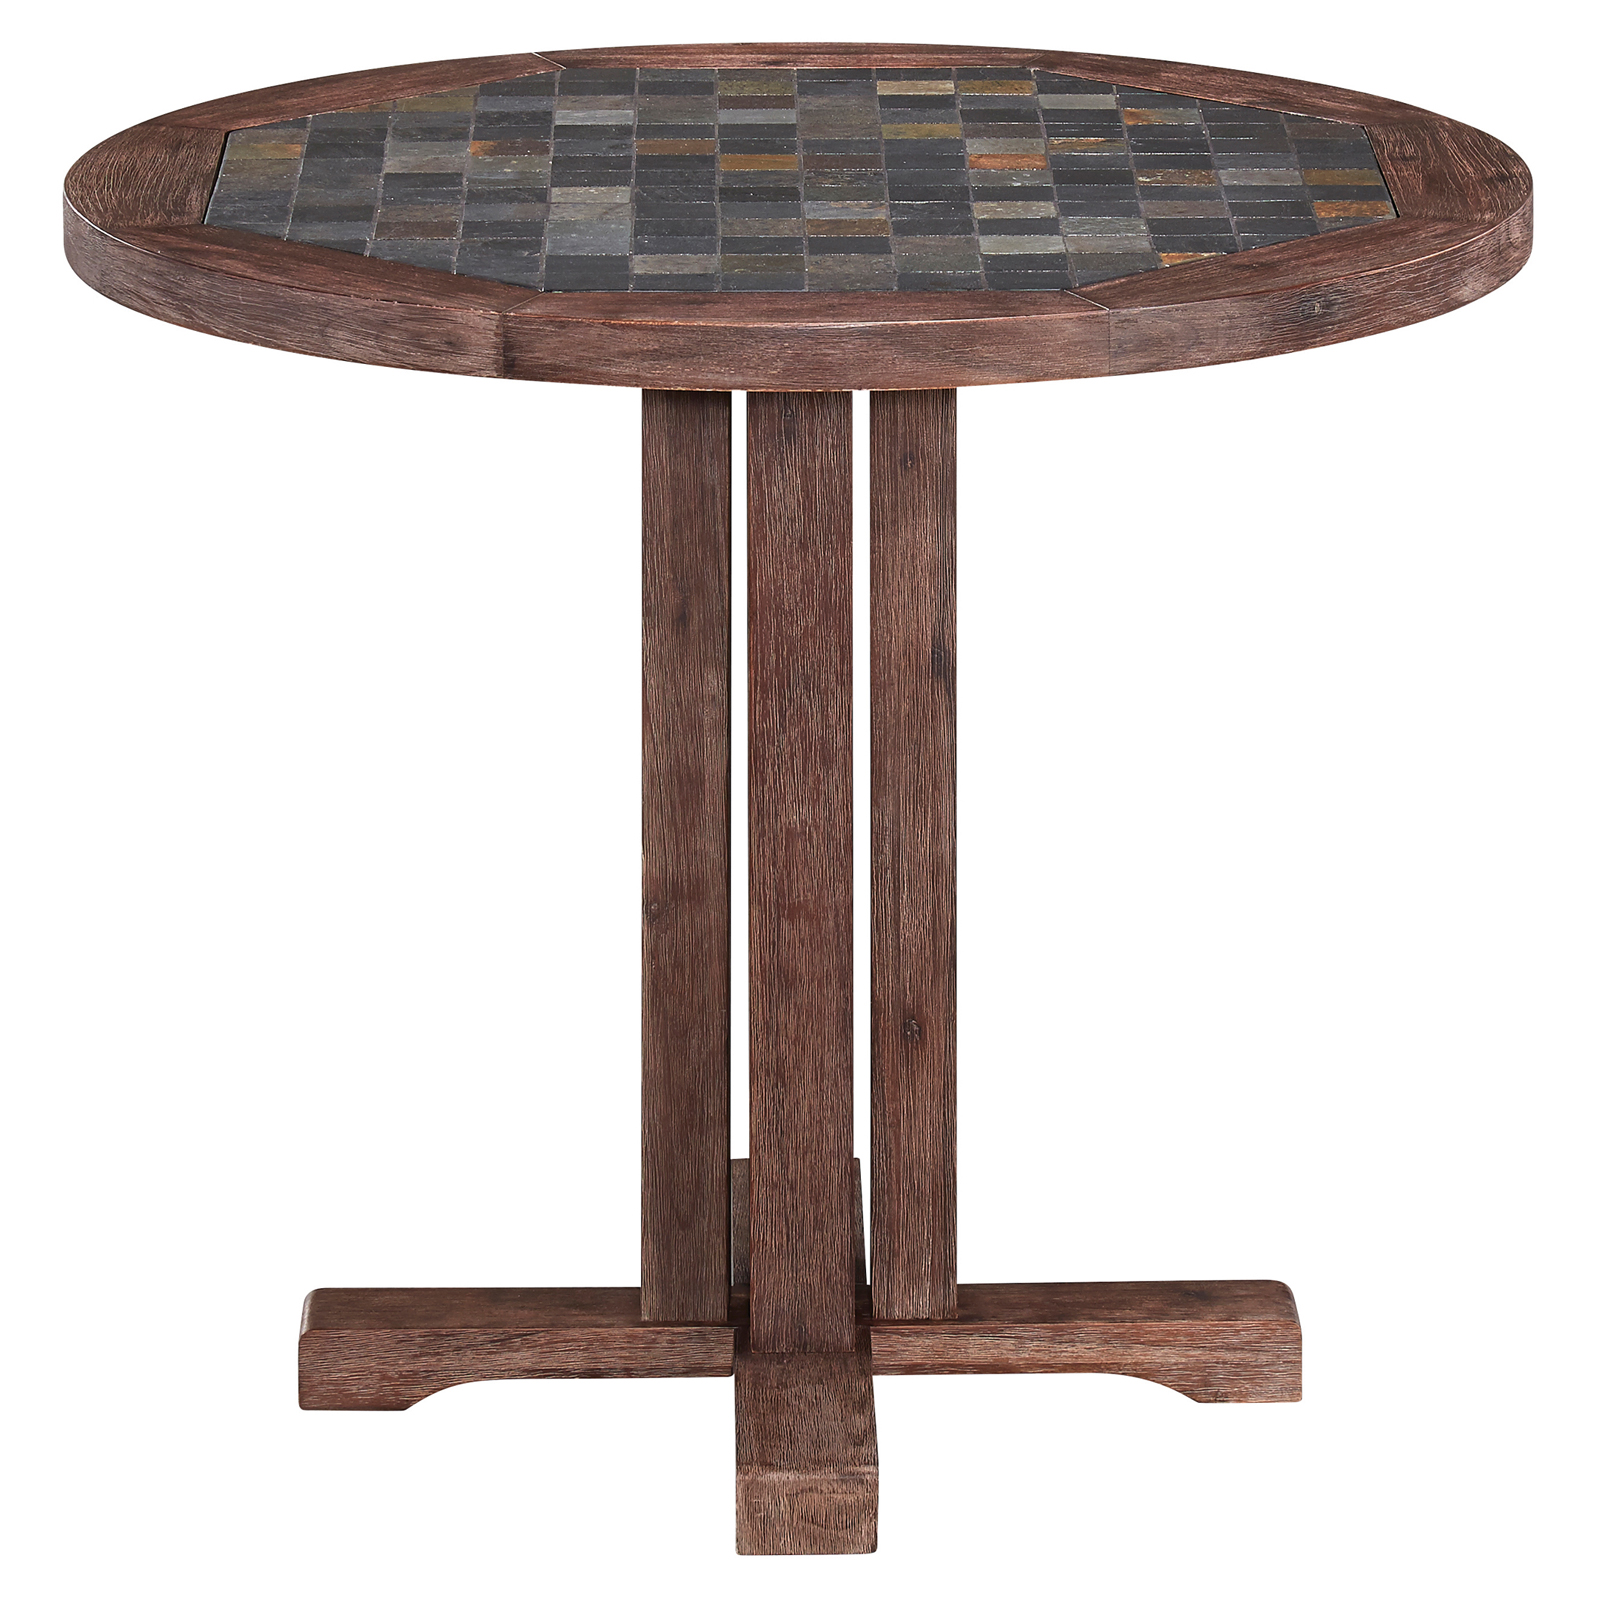 Home Styles Morocco 36 In Round Wood Patio Dining Table Patio Dining Table